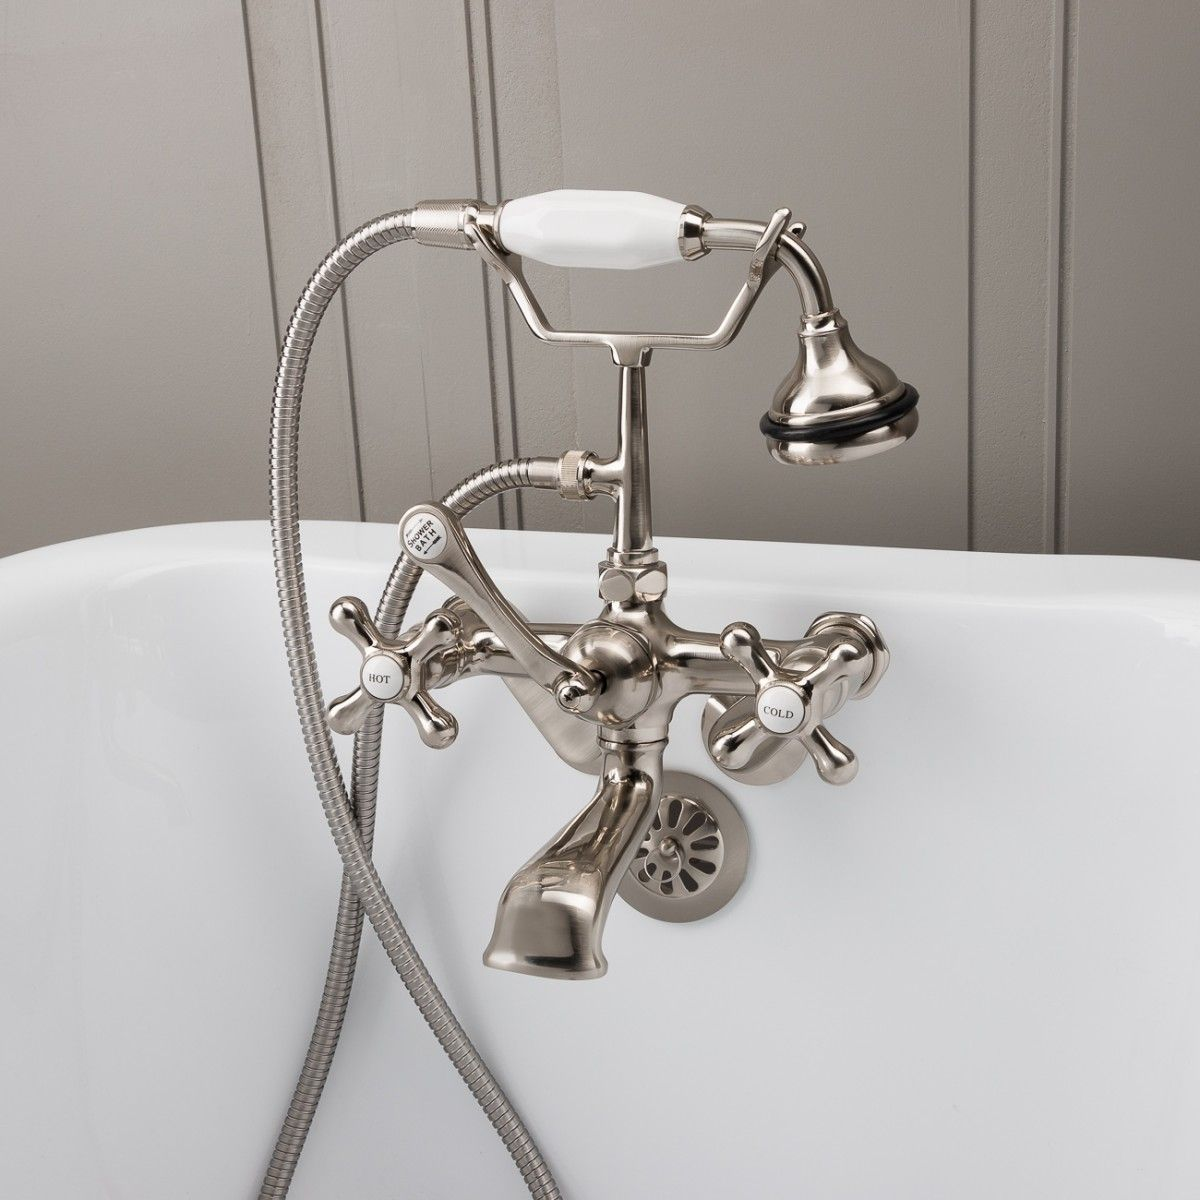 Low Spout British Telephone Clawfoot Faucet With Handshower